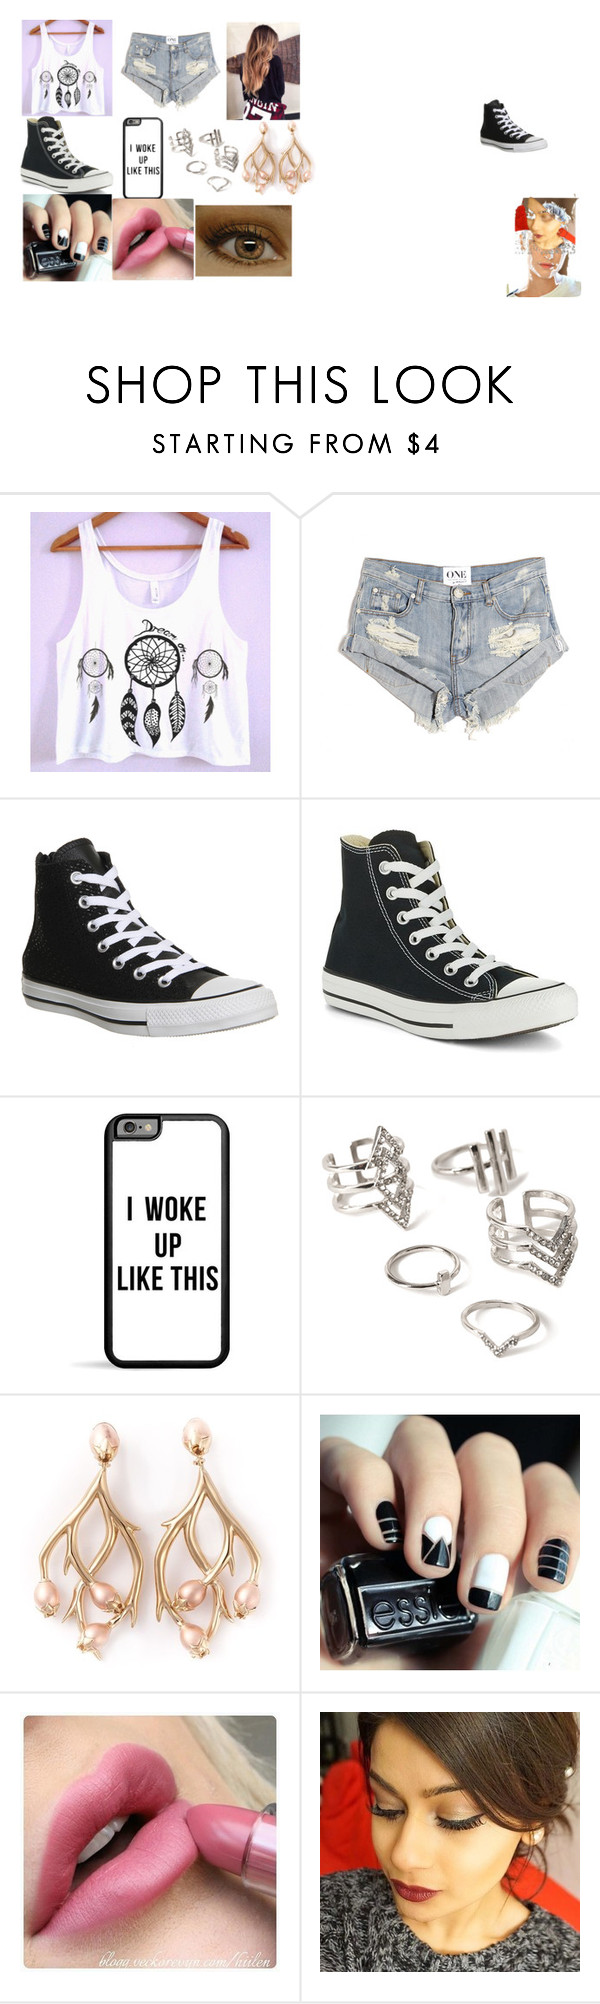 """""""hanging out with the magcon boys"""" by lillilykitty ❤ liked on Polyvore featuring One Teaspoon, Converse, Forever 21 and Shaun Leane"""